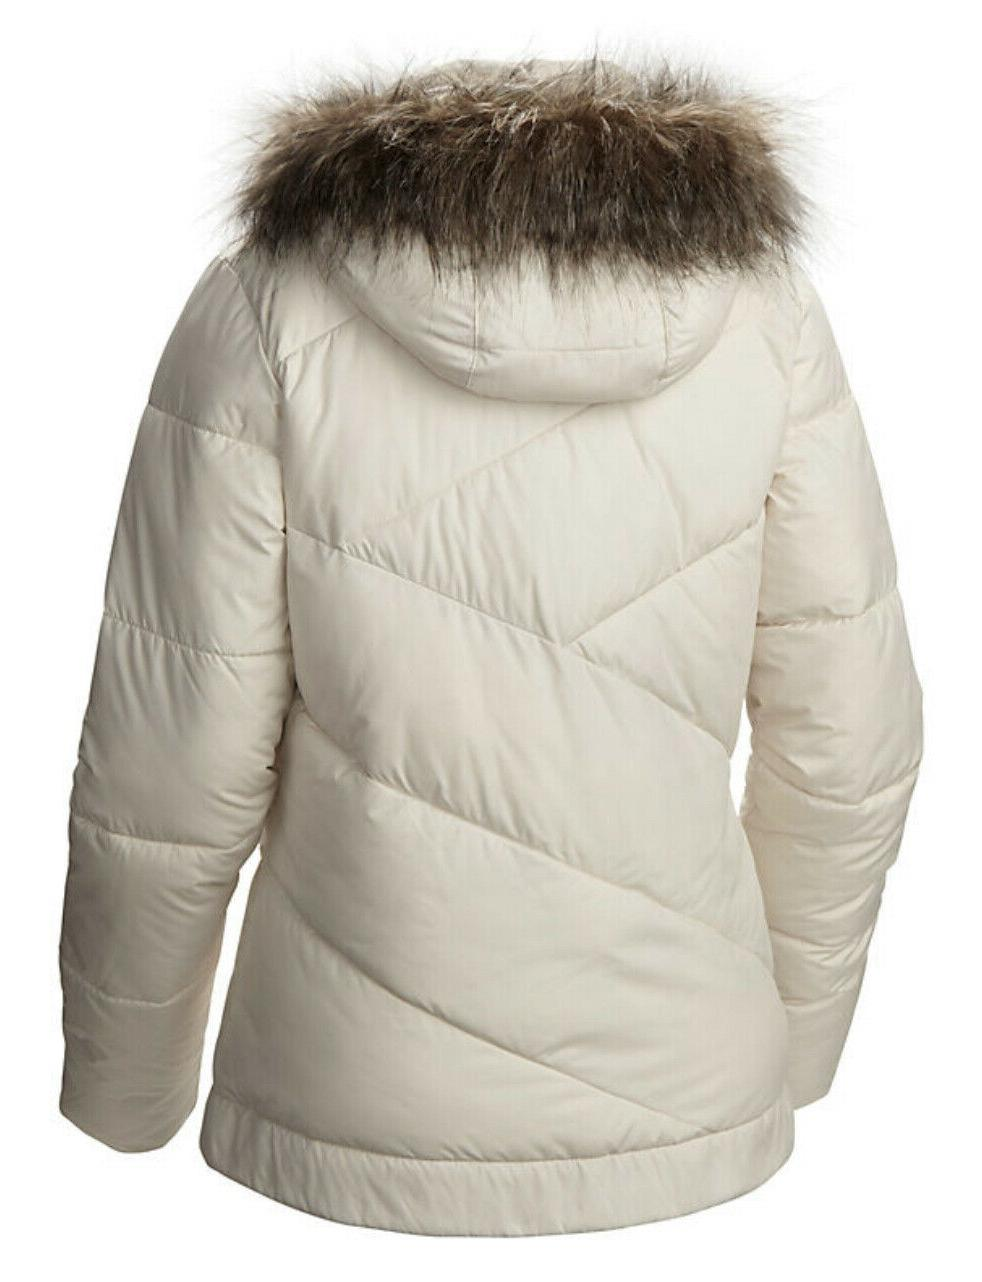 Women's Snow Eclipse Winter Jacket— Size L XL; $150